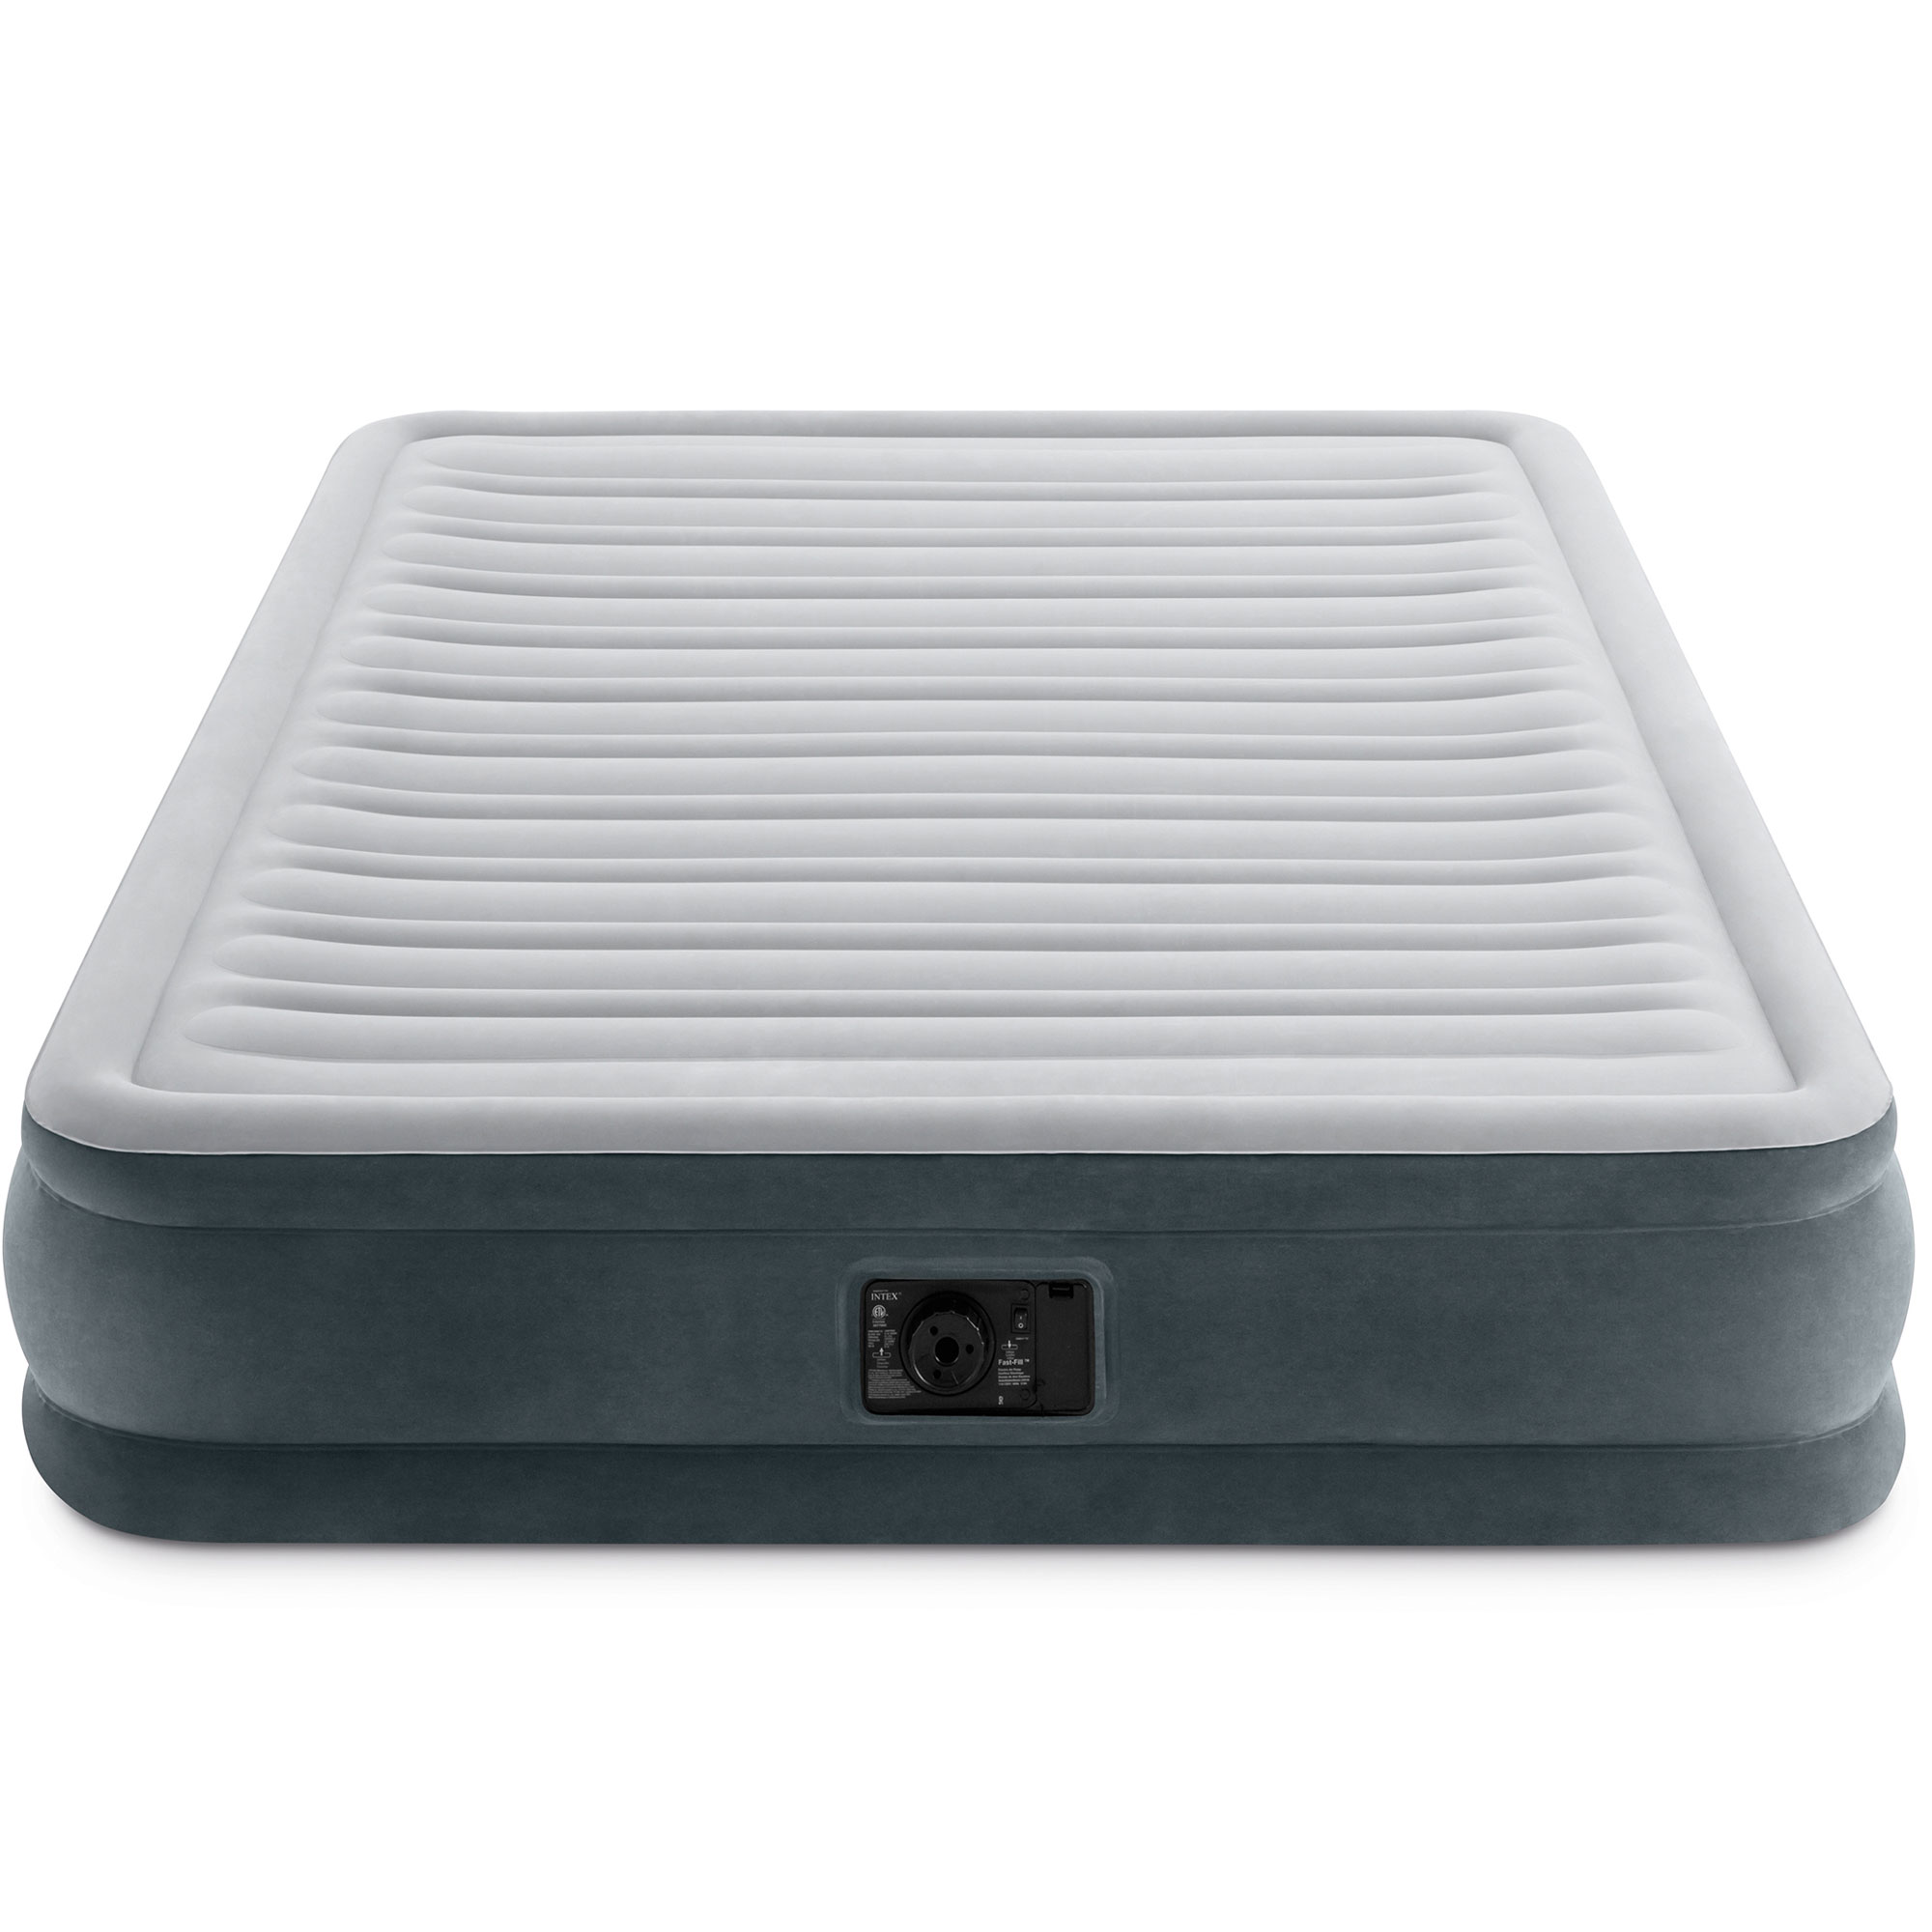 "Intex Full 13"" DuraBeam Airbed Mattress with Built-in Pump"